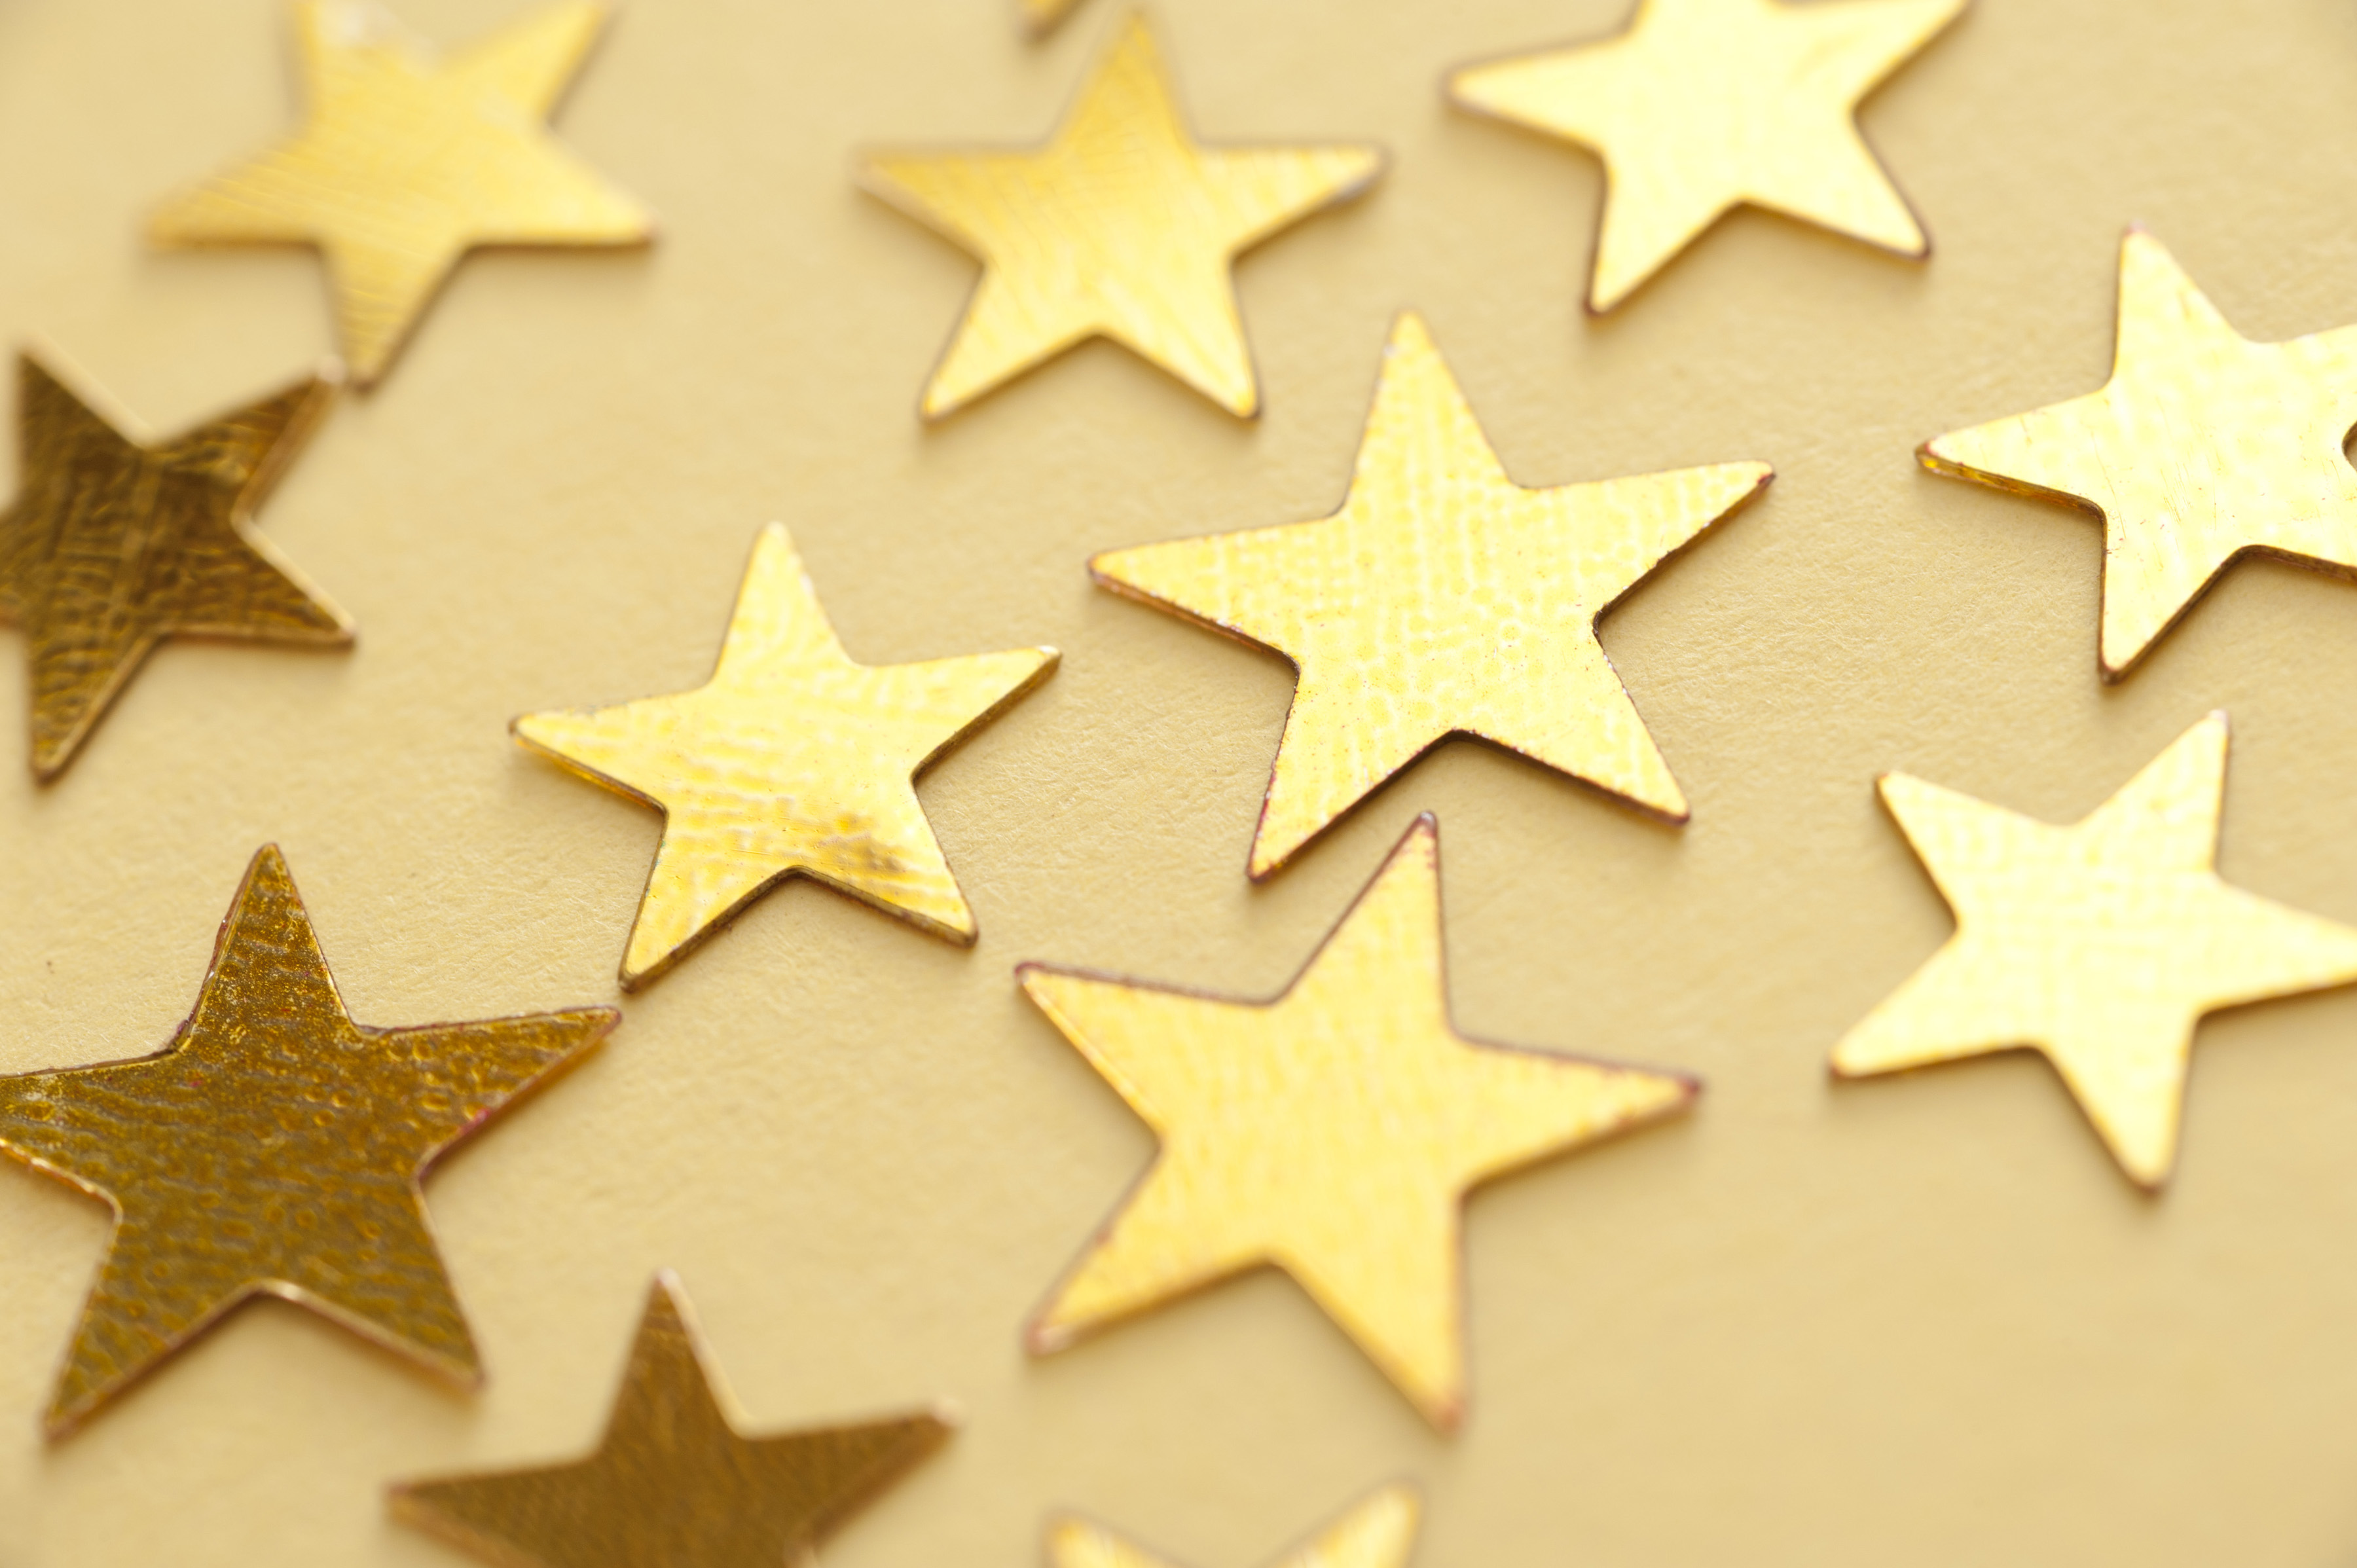 Festive gold stars scattered on a golden yellow background viewed at an oblique angle with focus to the central two stars in a festive or Christmas background